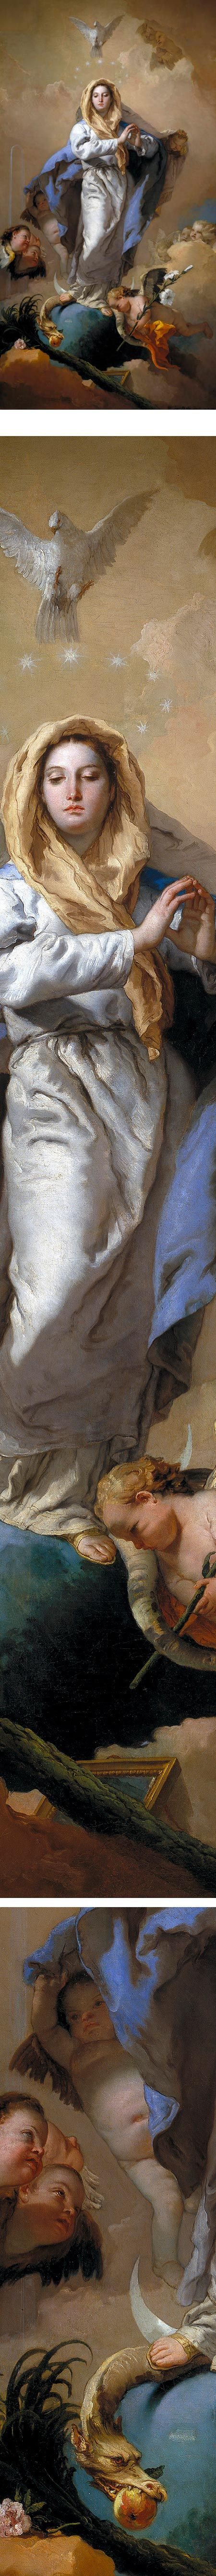 "❥ The Immaculate Conception, Giambattista Tiepolo~ ""I saw the Spirit come down like a dove"" John 1:32 ""A great sign appeared in the sky, a woman clothed with the sun, with the moon under her feet, and on her head a crown of twelve stars."" Rev 12:1, ""Like a lily among thorns, so is my friend among women."" Songs 2:2, ""Behold, I have given you the power 'to tread upon serpents' and scorpions and upon the full force of the enemy and nothing will harm you."" Luke 10:19"